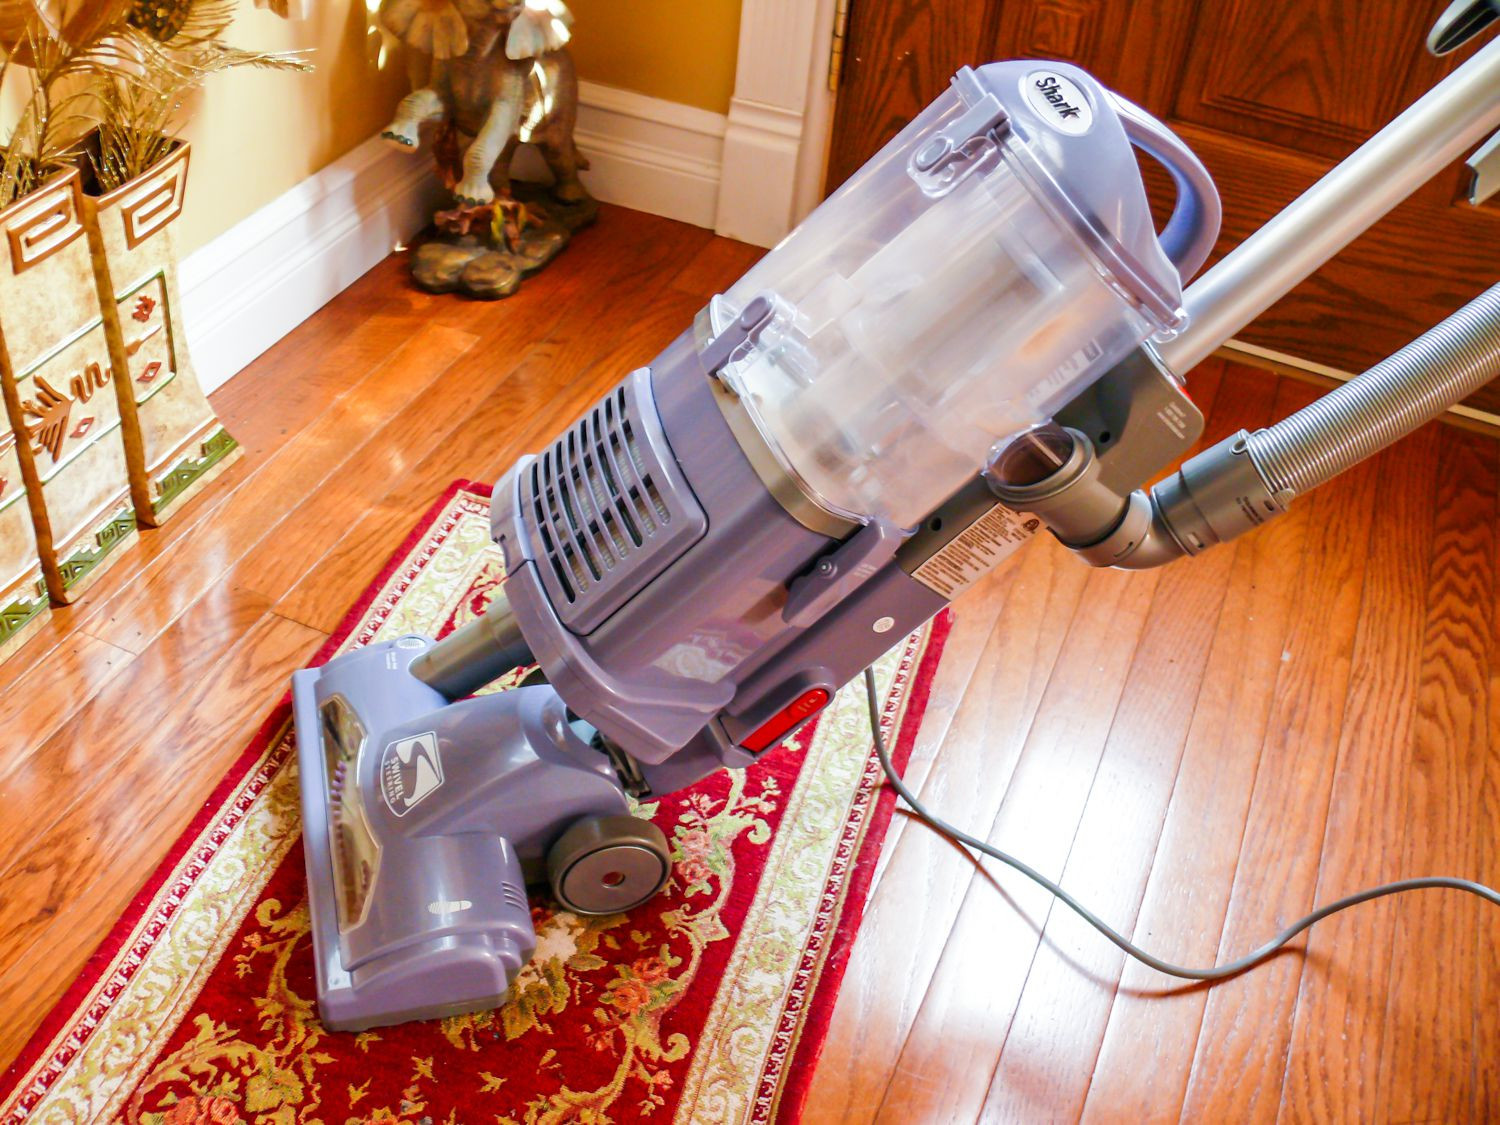 best vacuums for hardwood floors 2016 of the 10 best vacuum cleaners to buy in 2018 throughout 4062974 2 2 5bbf718a46e0fb00519d59a7